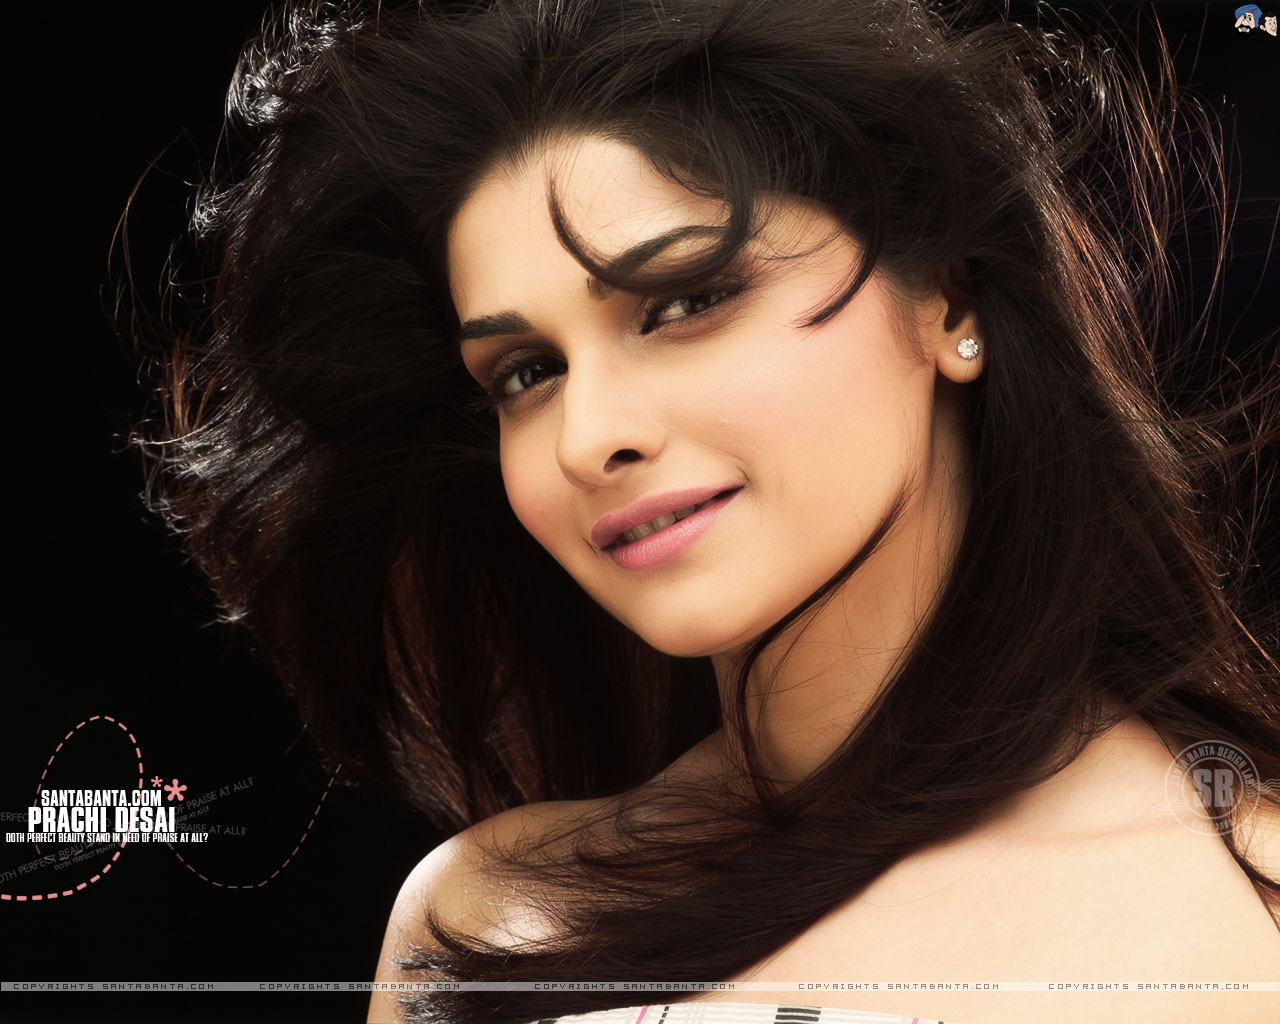 Actress prachi desai hot photoshoot photoshoot2012 for Mygw